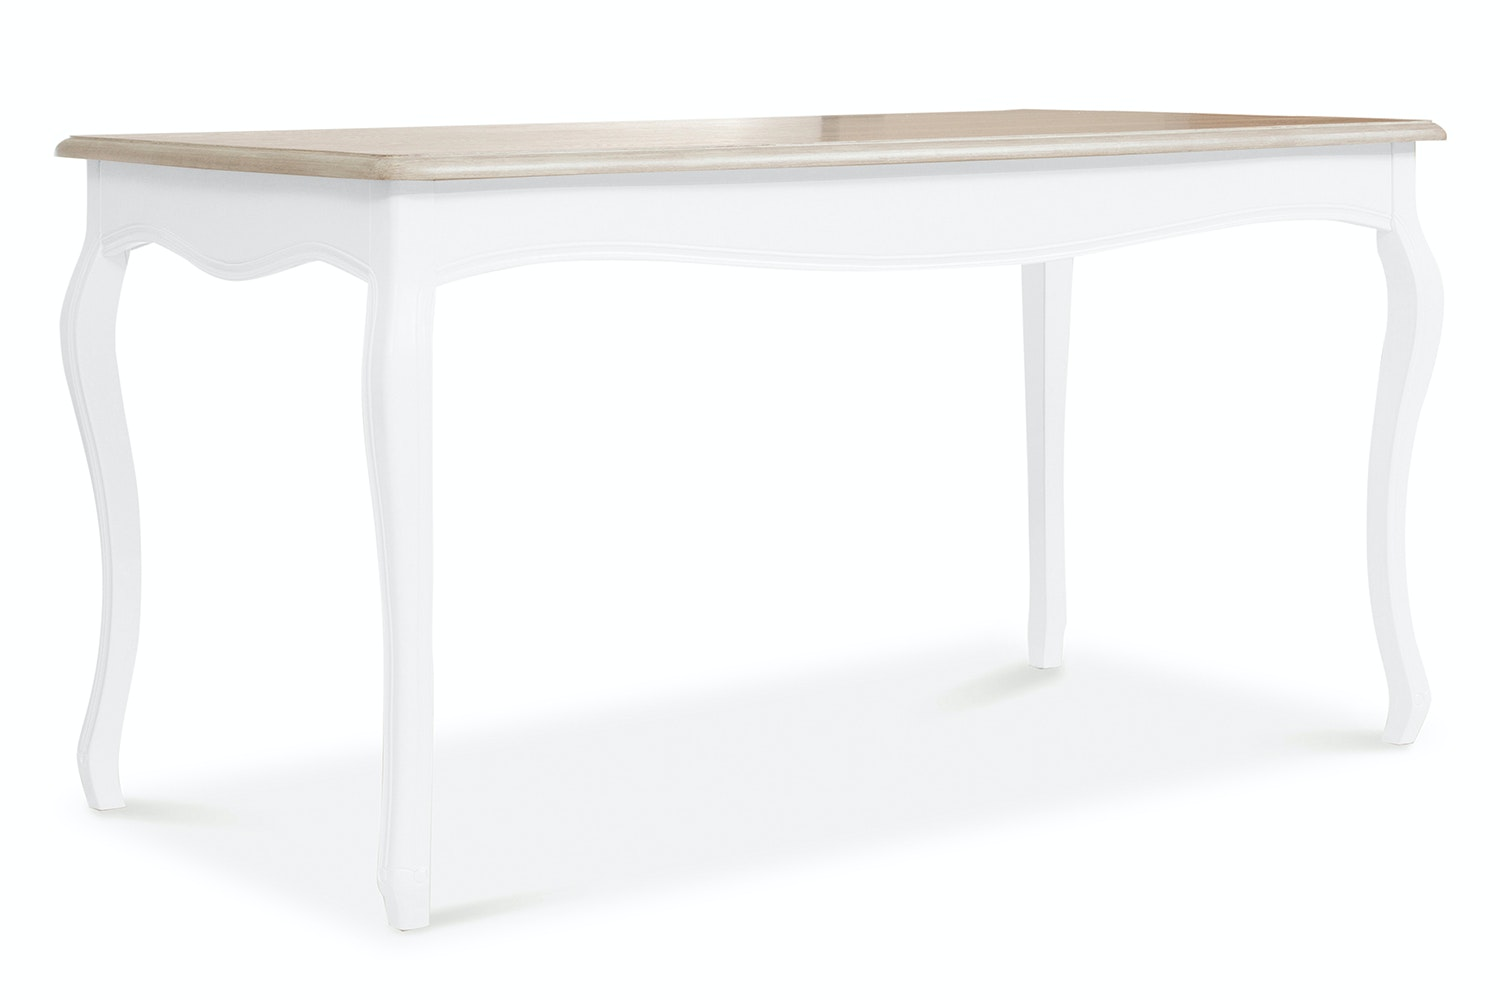 Bouvard Dining Table | Colourtrend